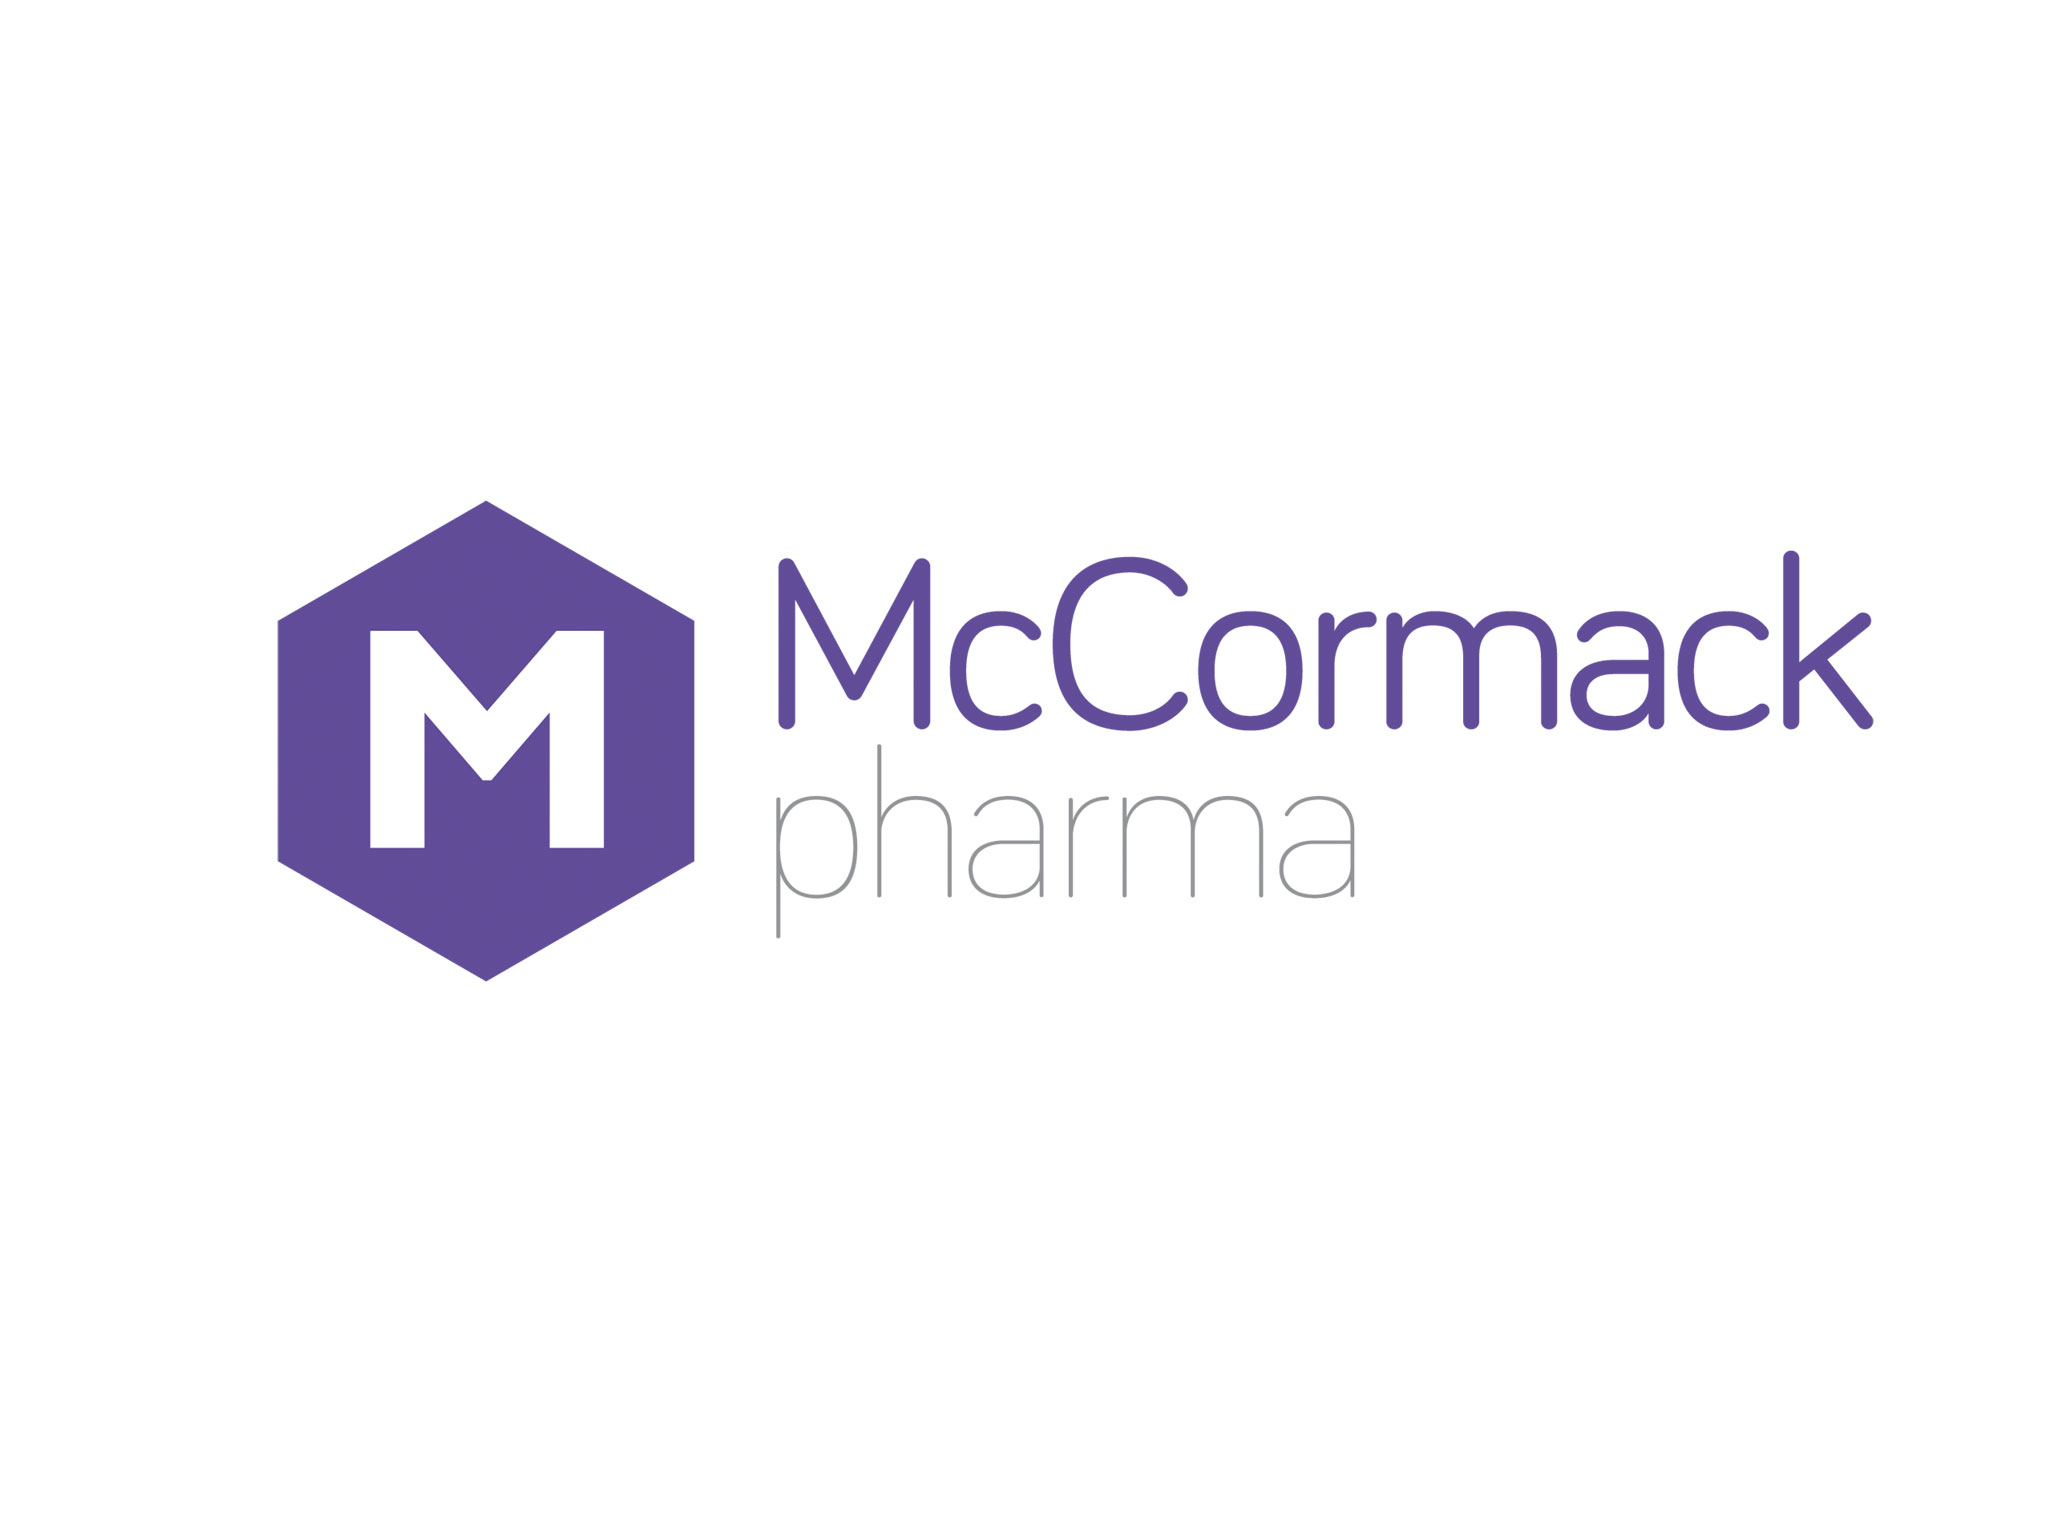 logo design for McCormack Pharma